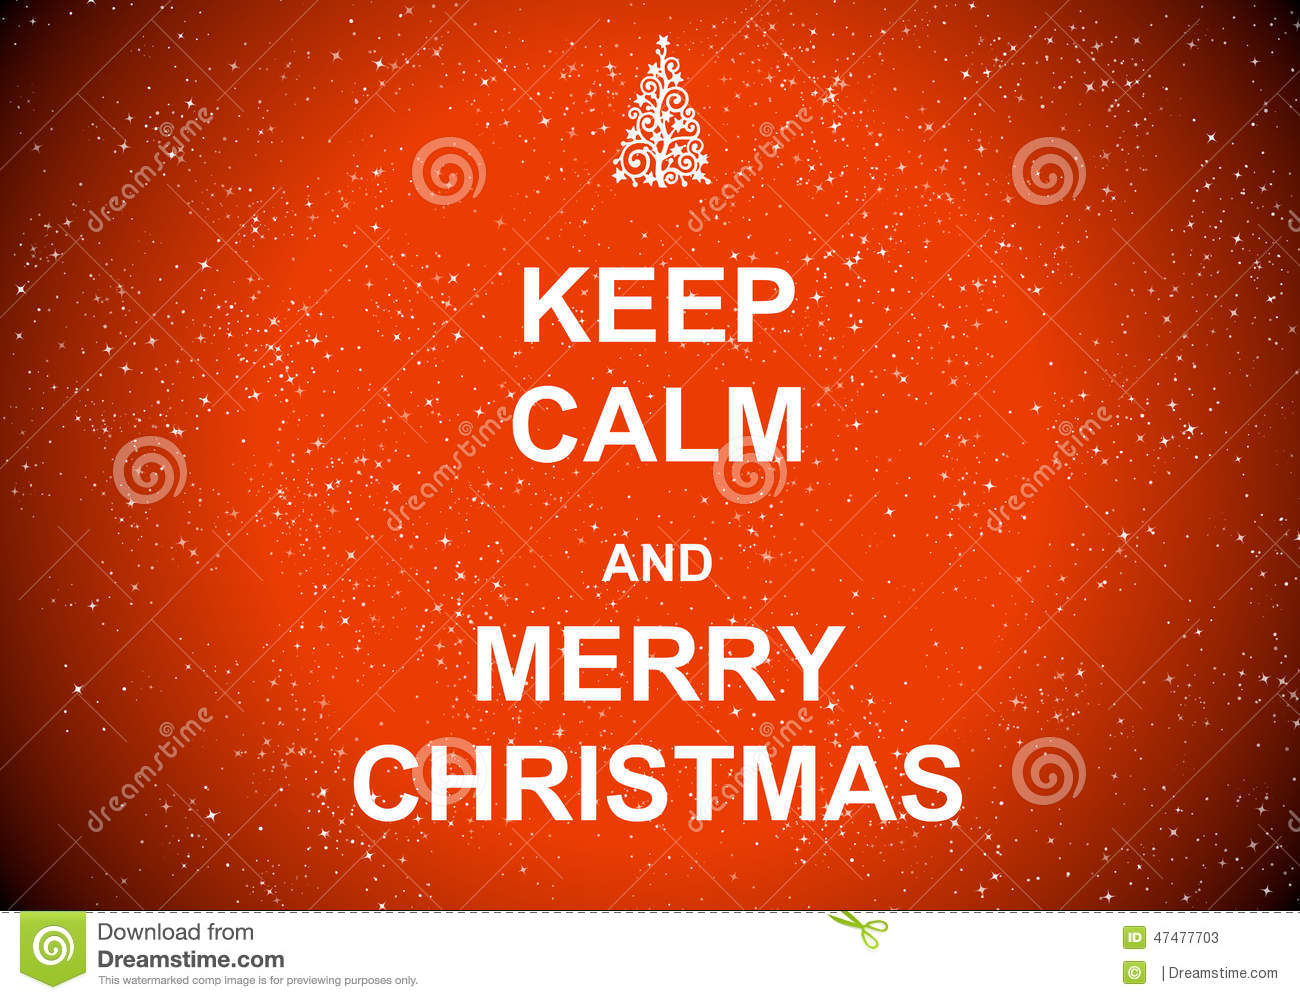 Keep Calm And Merry Christmas Stock Illustration - Illustration of ...